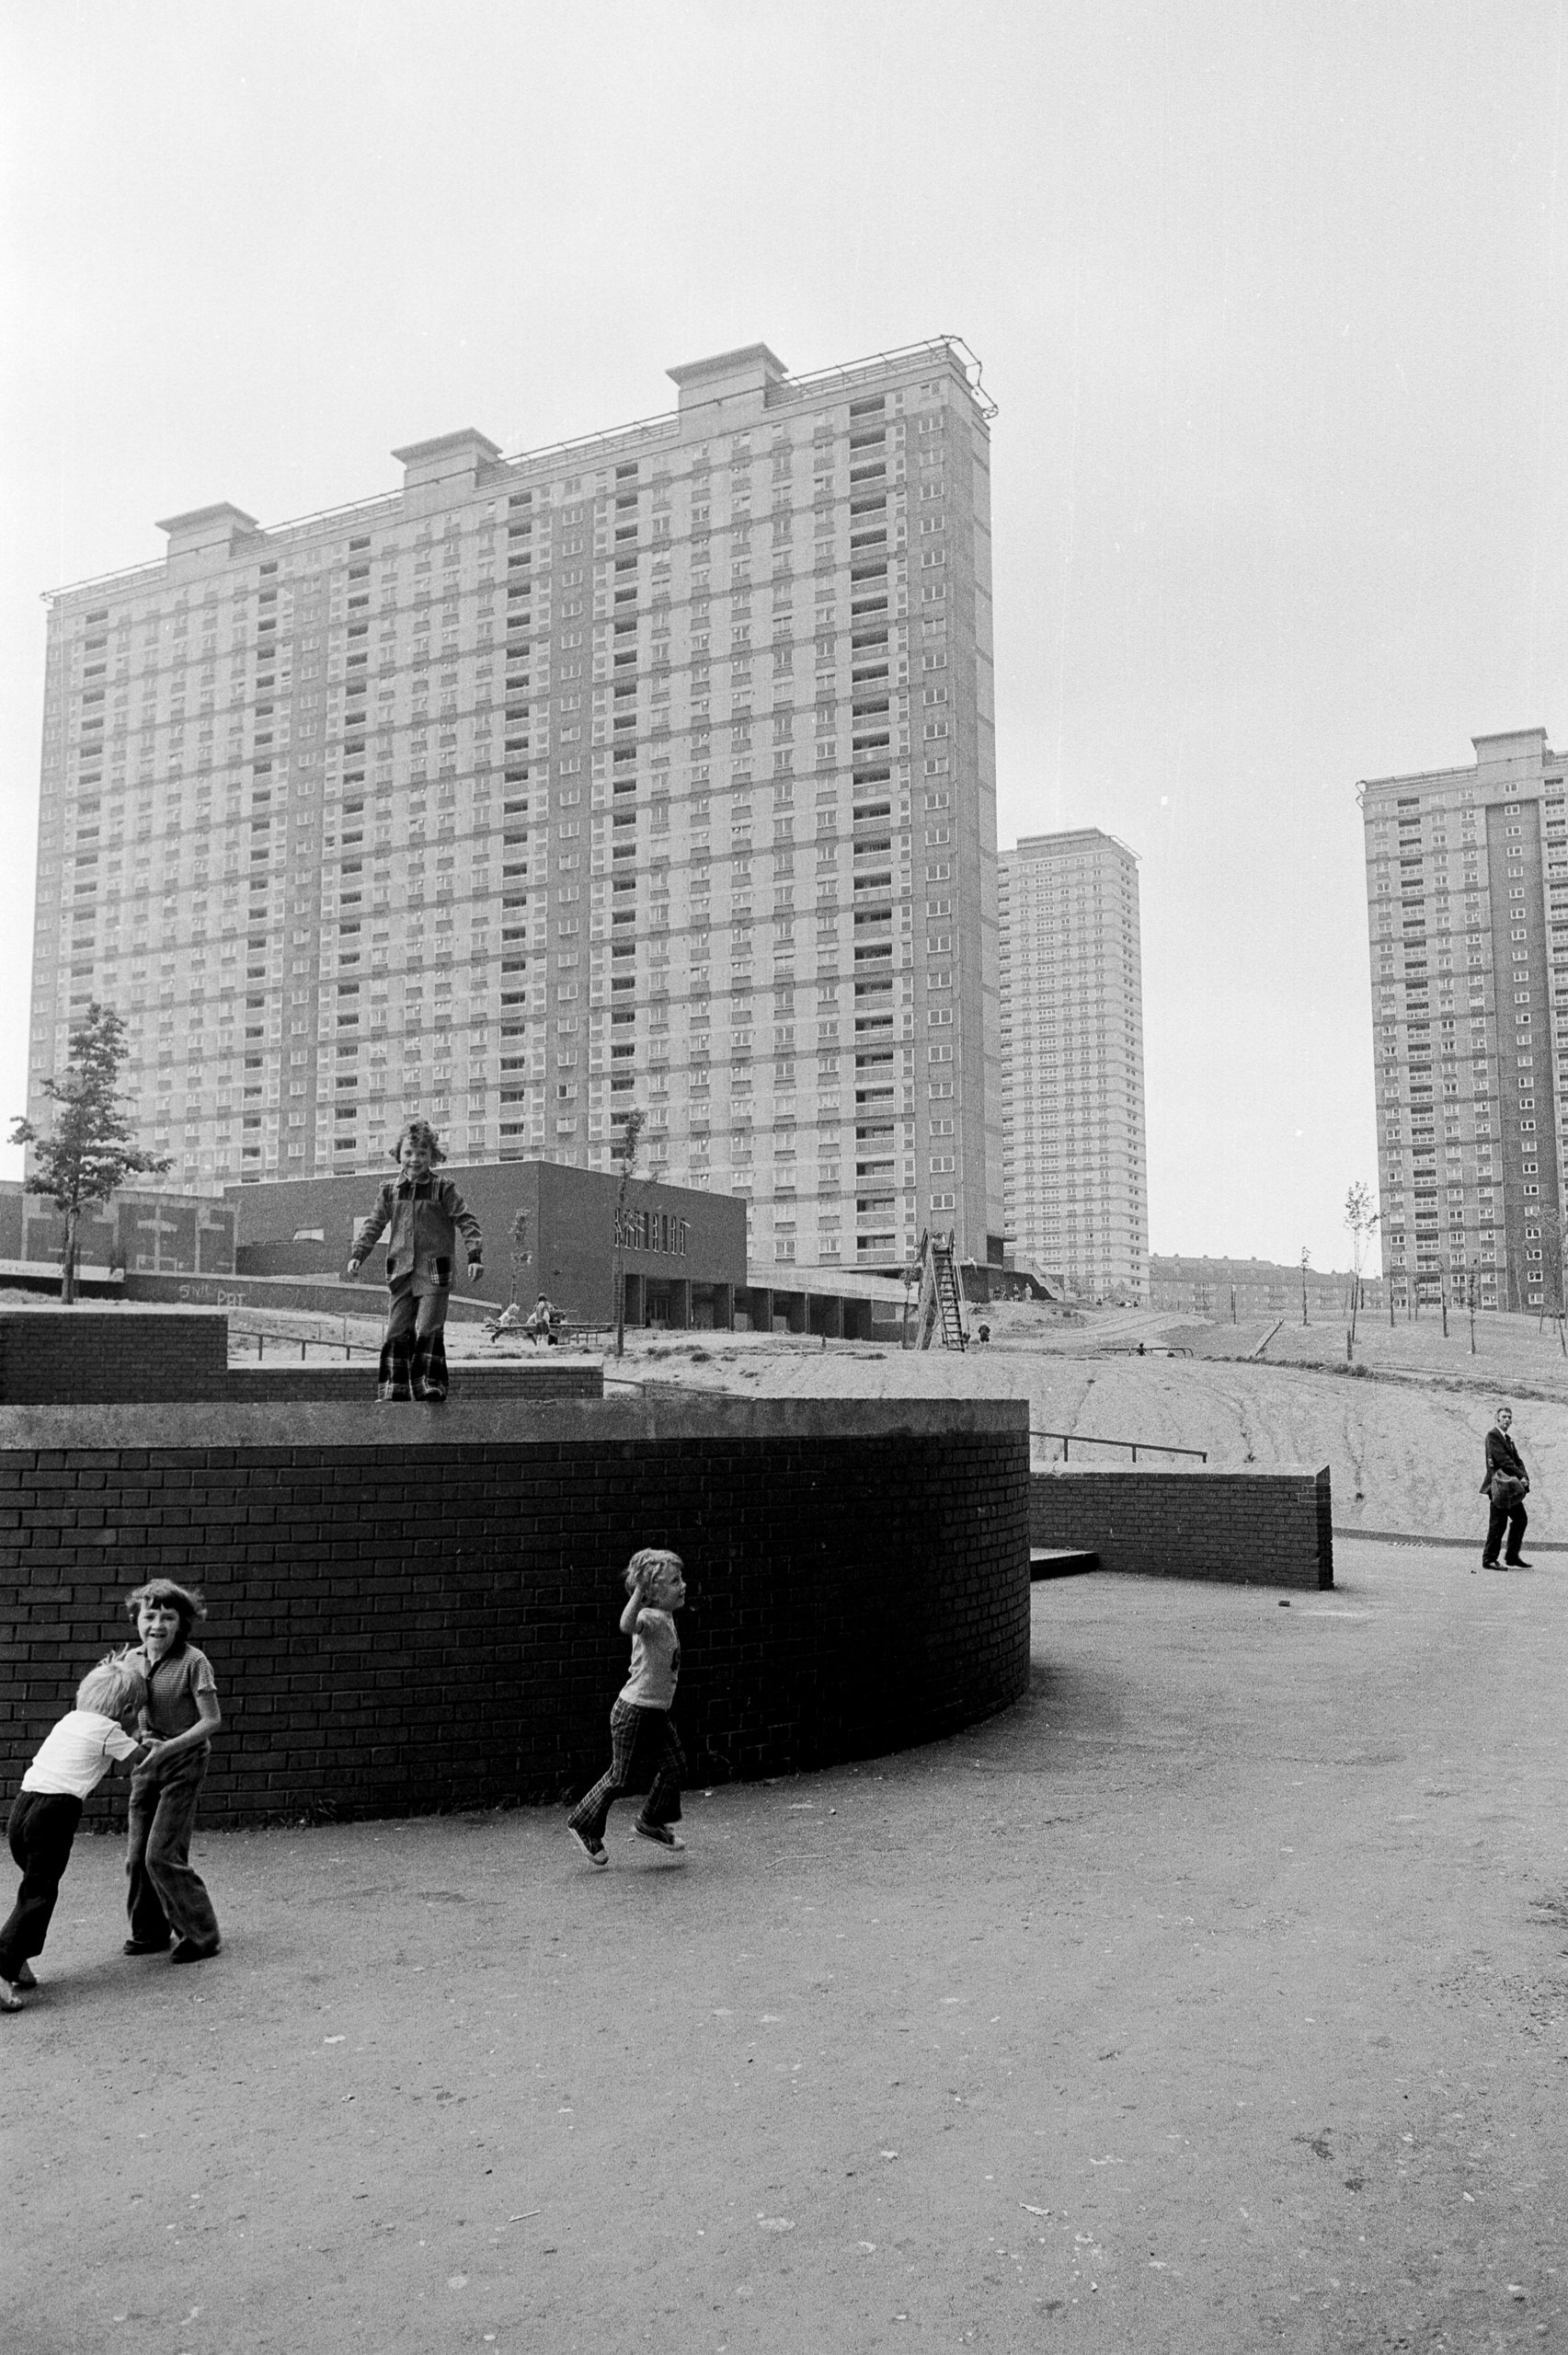 Image of Untitled, from 'Glasgow 1974' (Children playing) by Hugh Hood